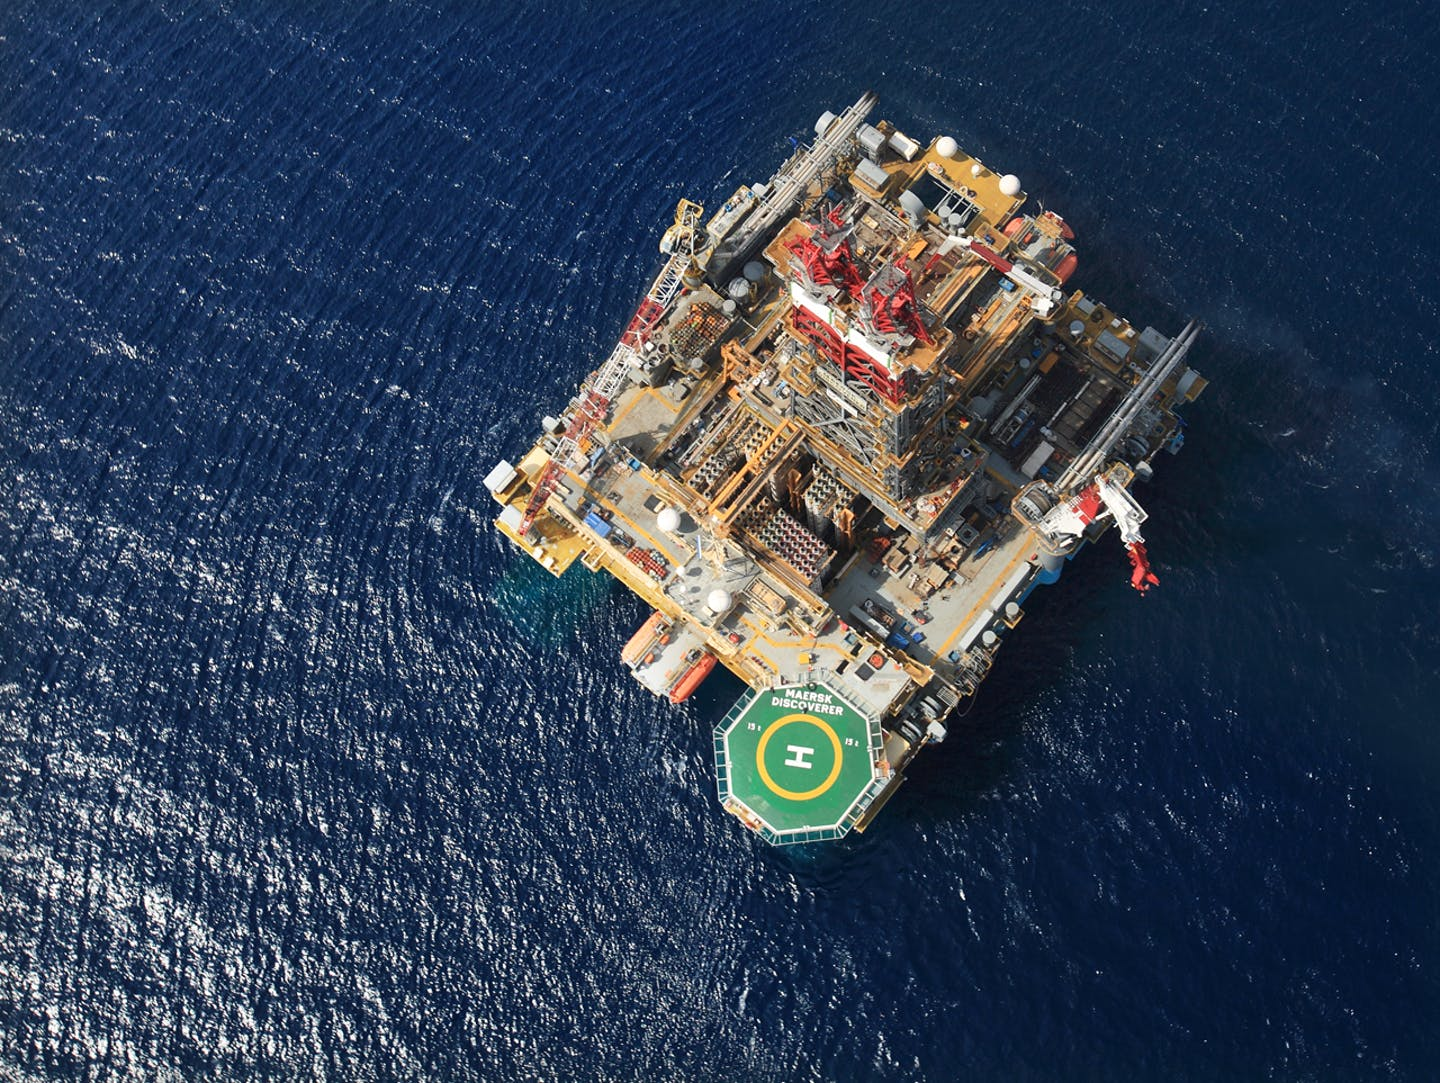 Reducing accidents and incidents at sea